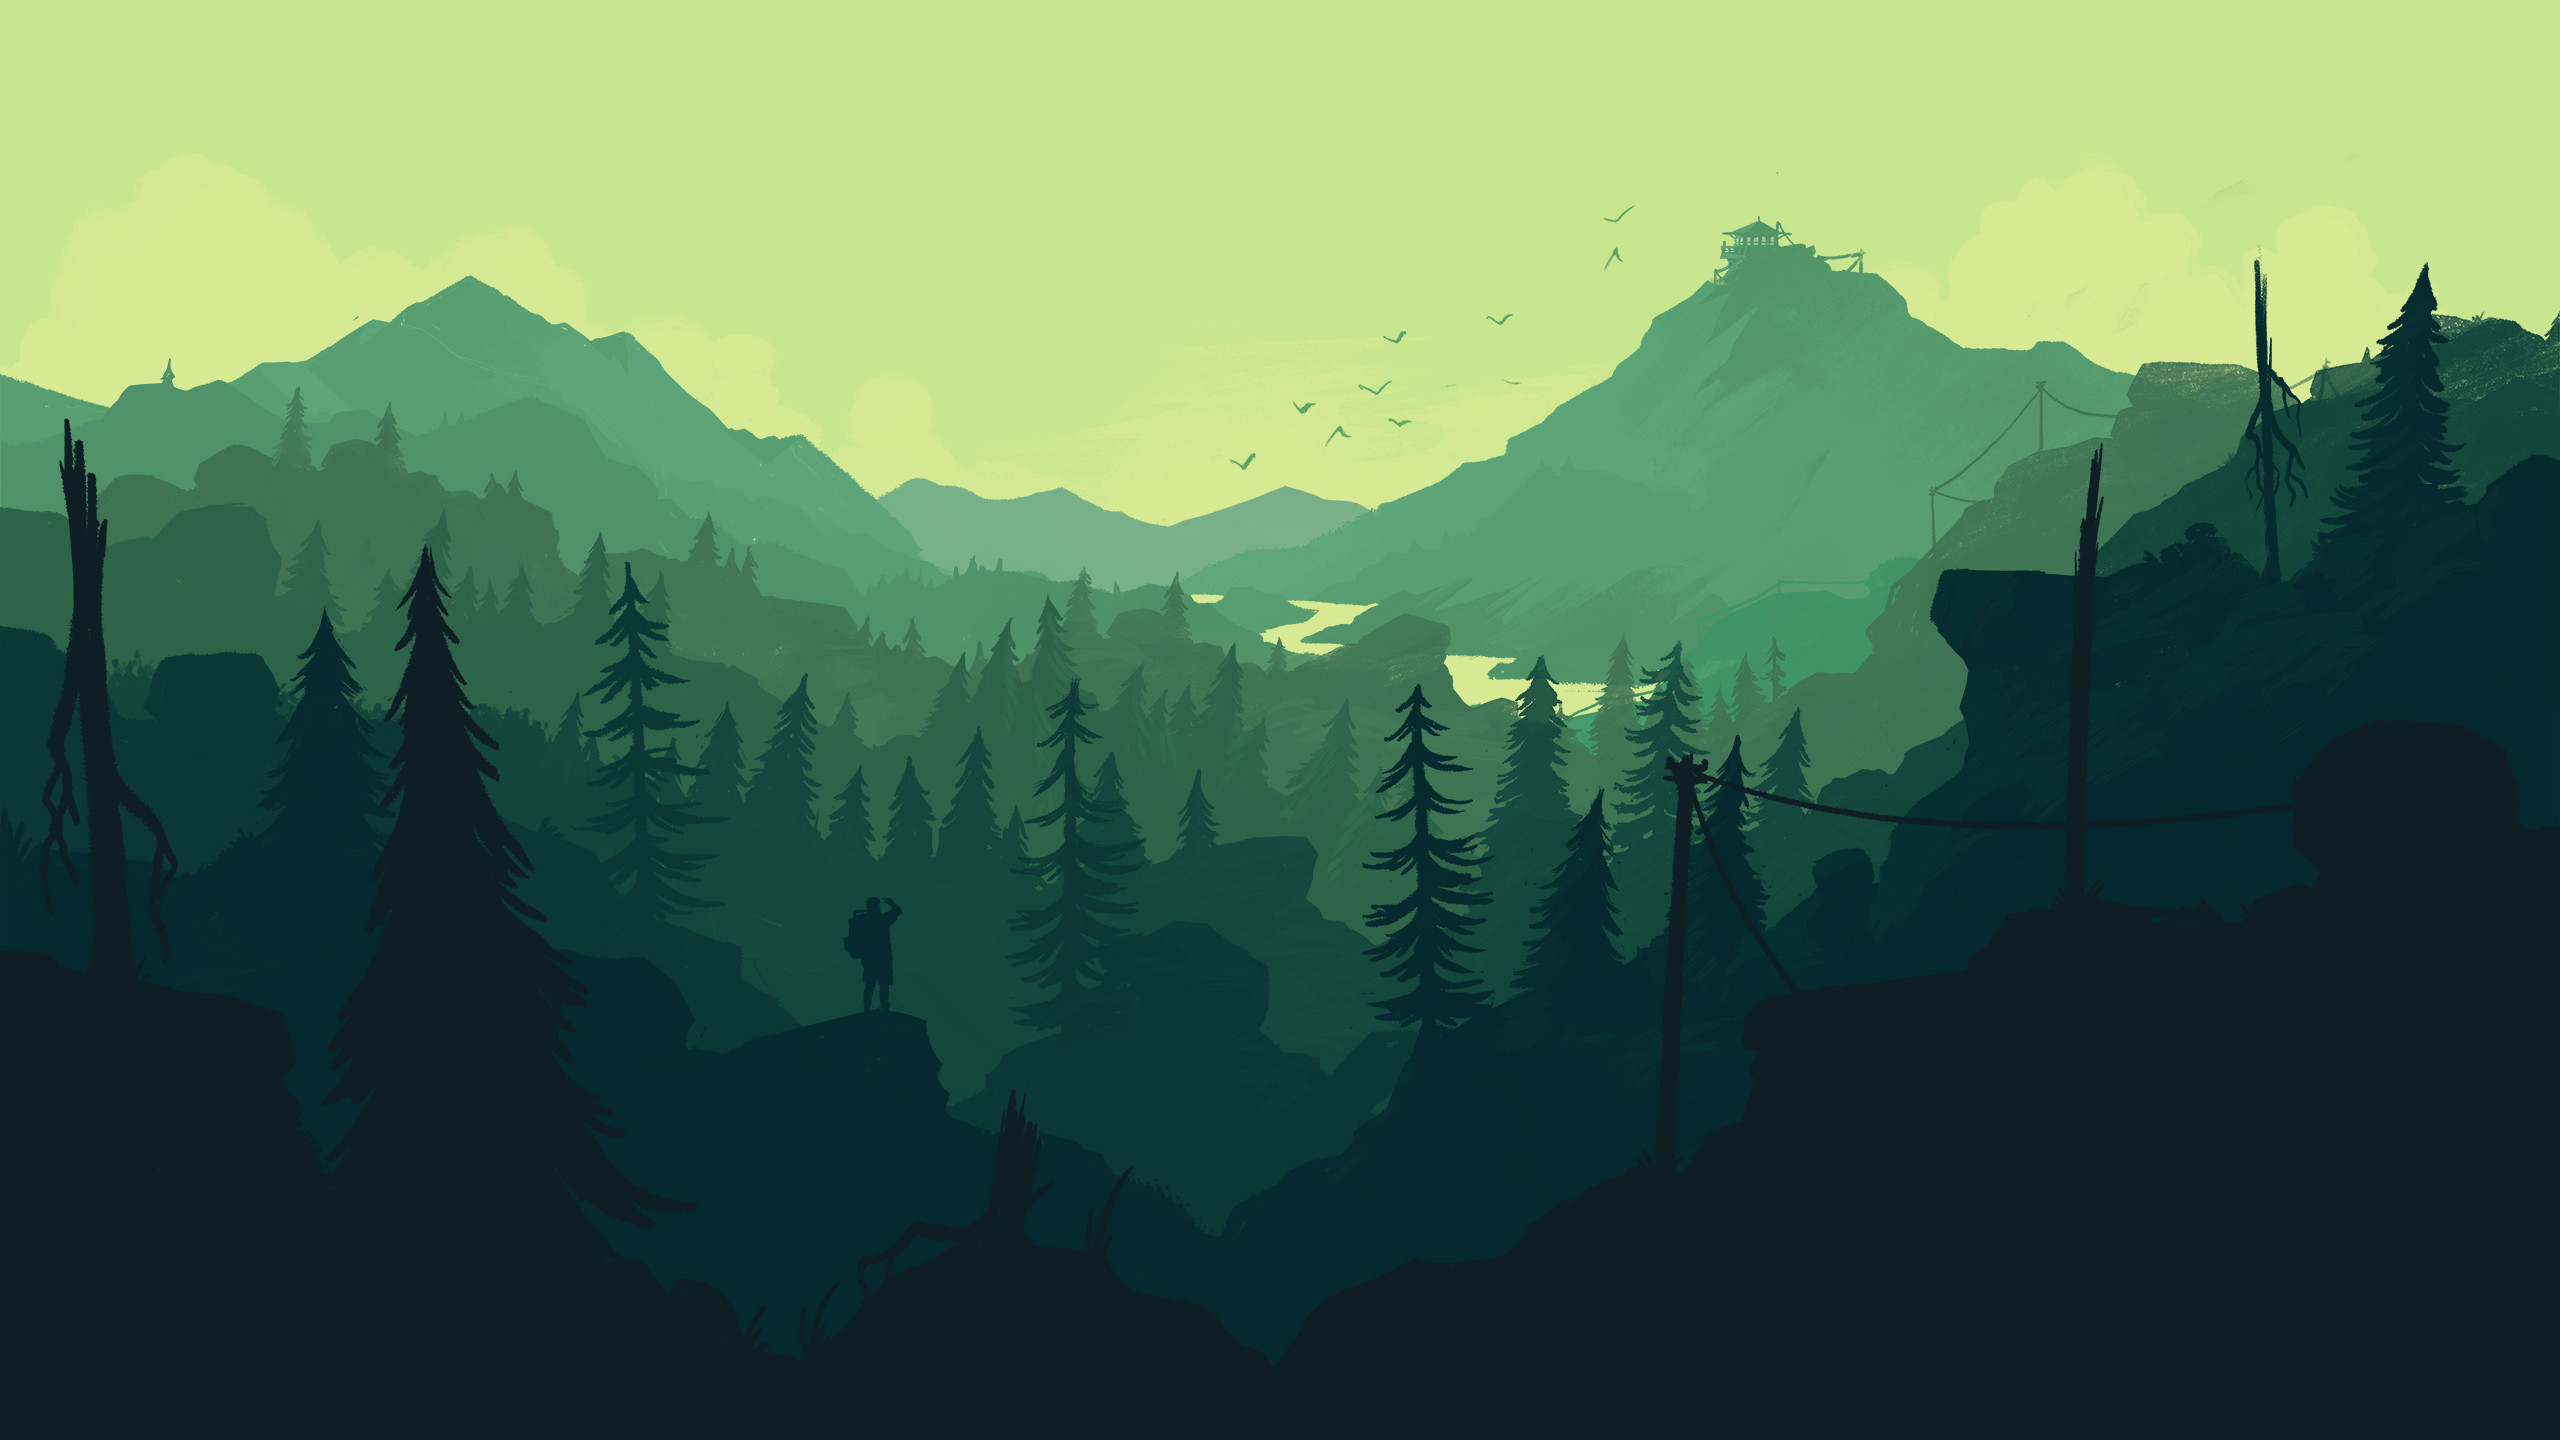 Res: 2560x1440, Forest Minimal Download Wallpaper HD